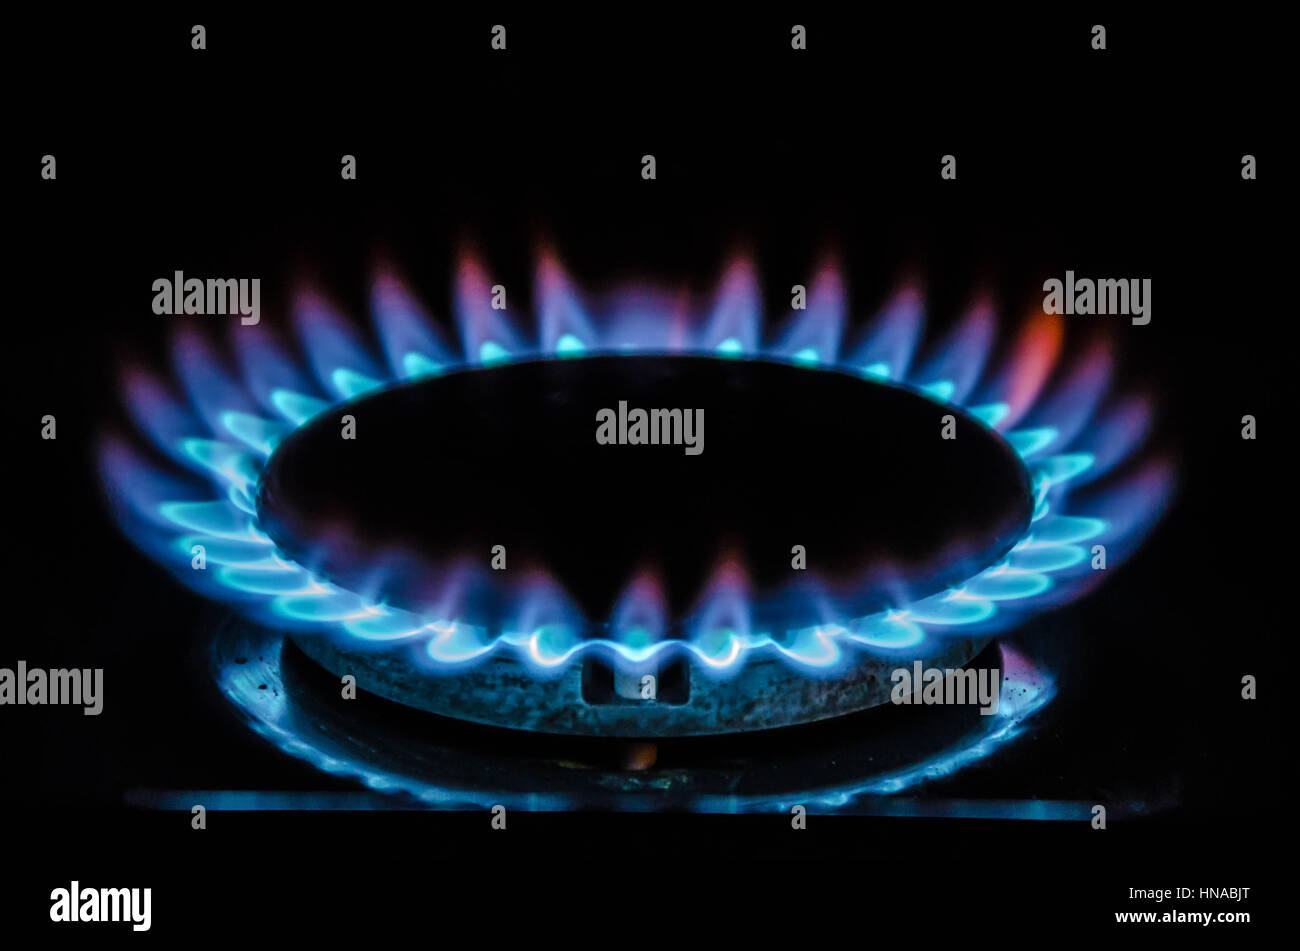 a-blue-flame-from-a-bas-burner-on-a-gas-cooker-HNABJT.jpg